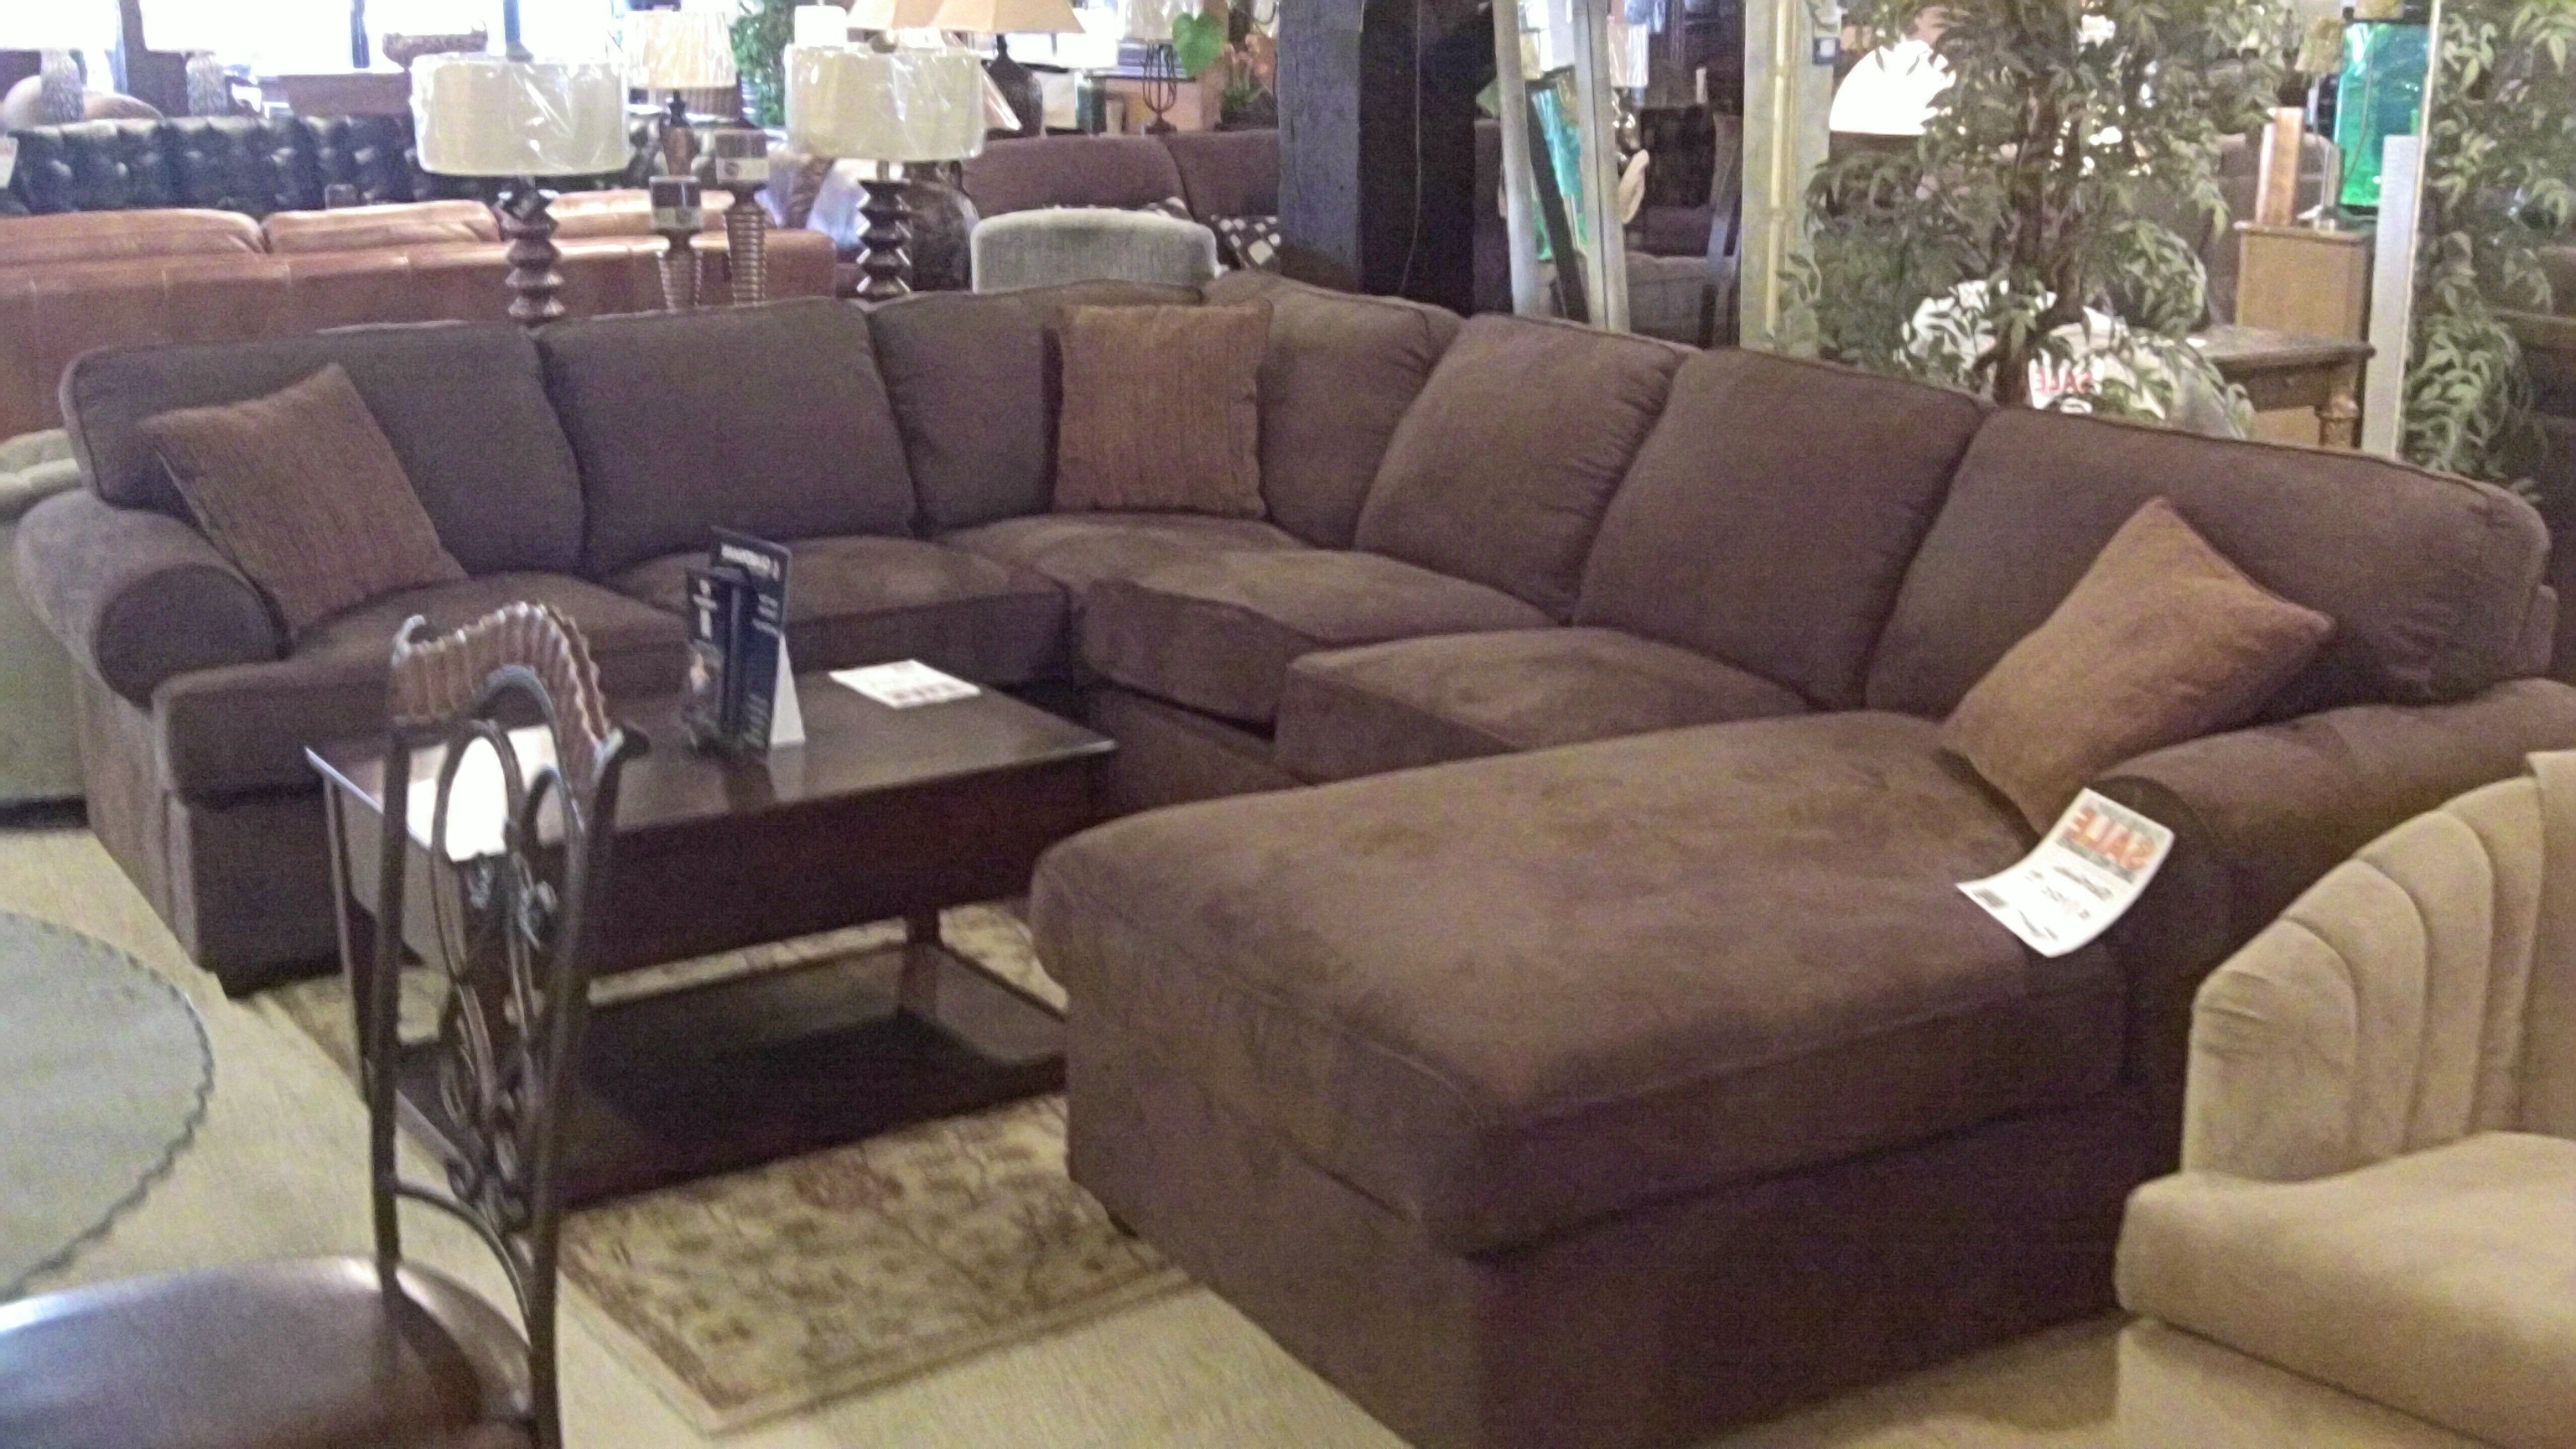 Sectional Couches With Large Ottoman Throughout 2018 Home Design : Cool Best Modern Fabric Sectional Sofas With Chaise (View 15 of 20)